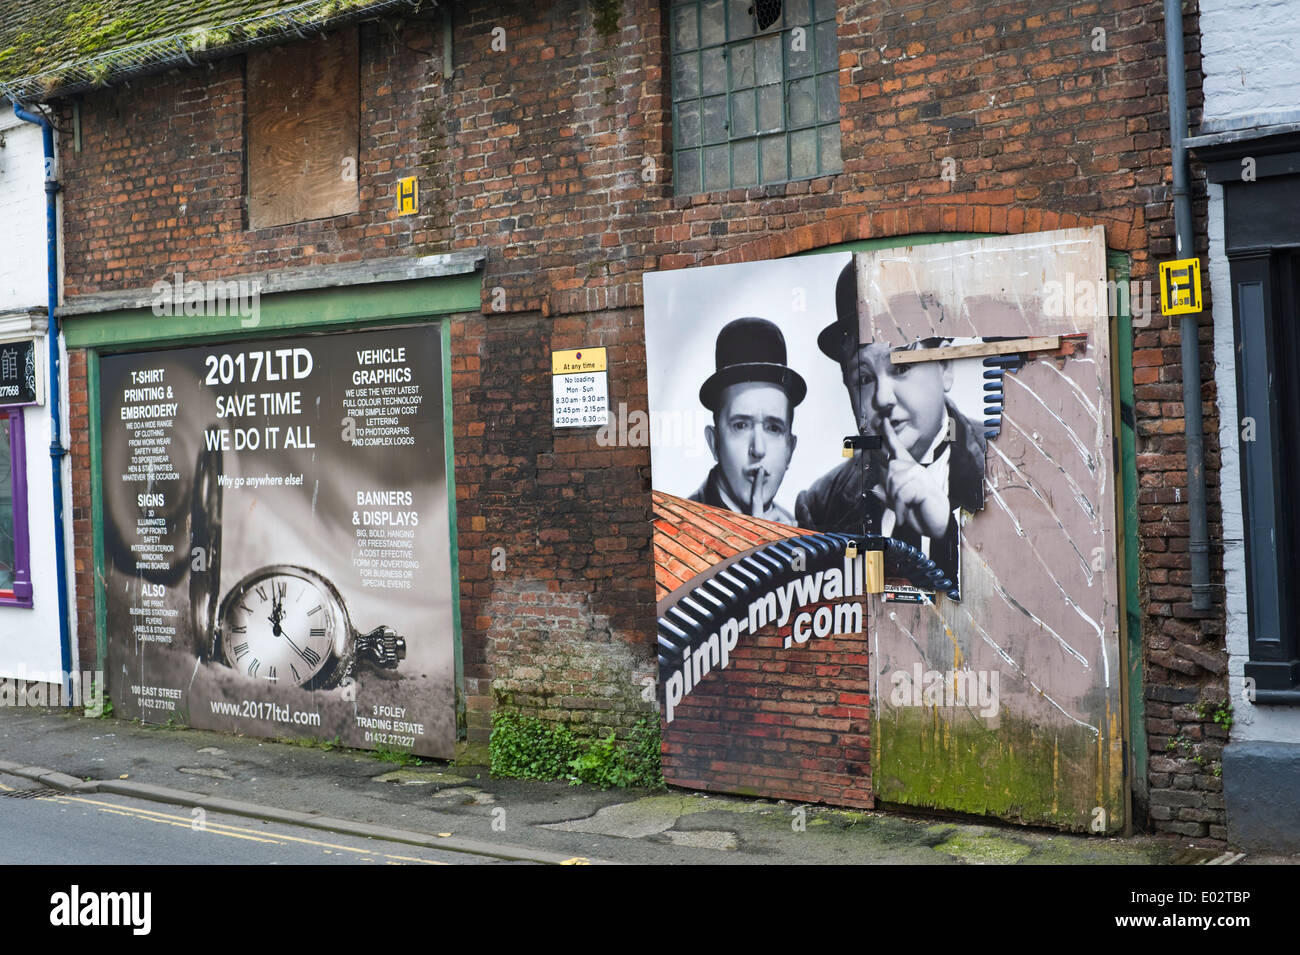 Attempt to improve derelict building with poster graphics in Hereford Herefordshire England UK - Stock Image